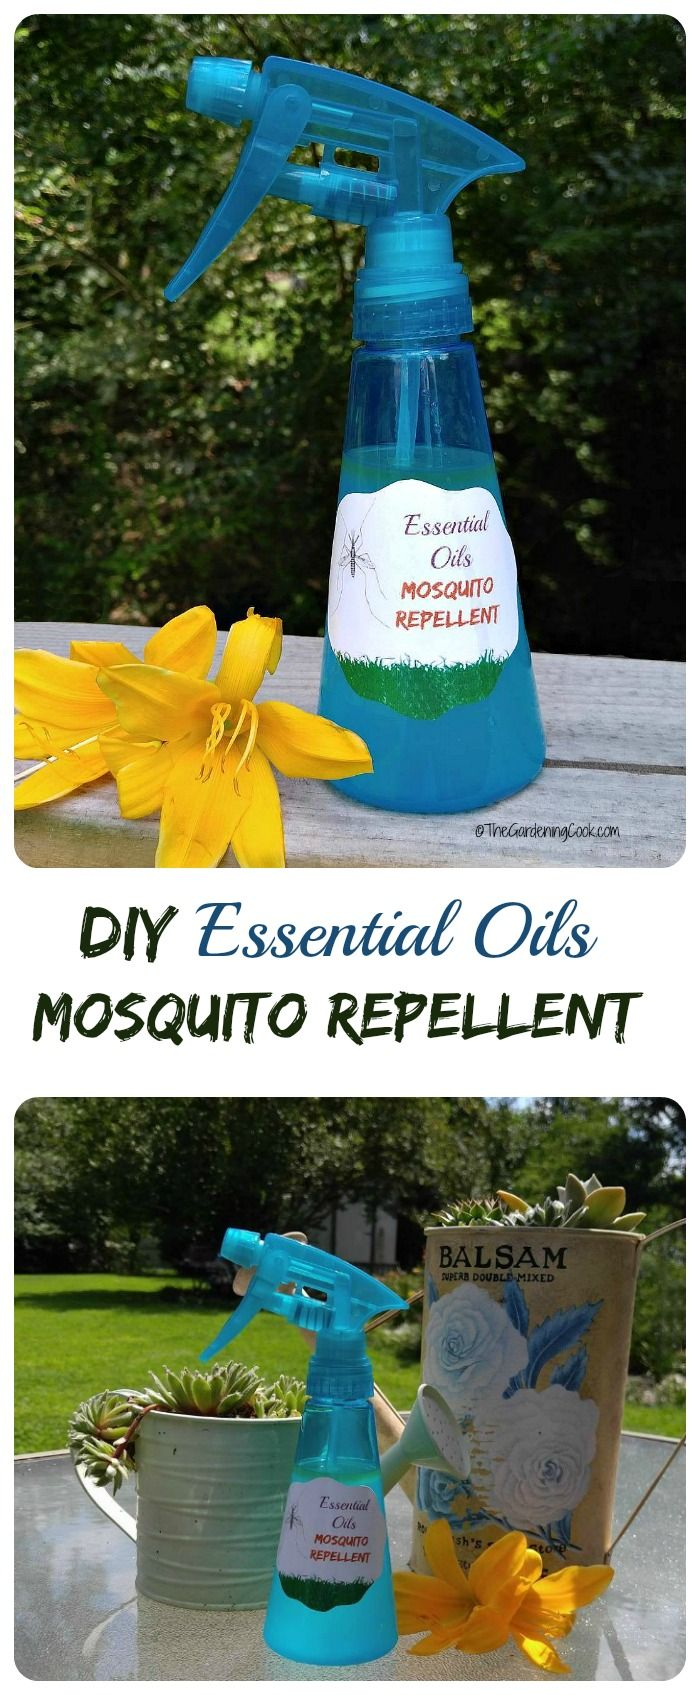 This effective DIY mosquito repellent spray uses essential oils-- includes FREE PRINTABLE for bottle labels and options for flea and tick spray too!! thegardeningcook.com  #StimulateTheSenses #ad